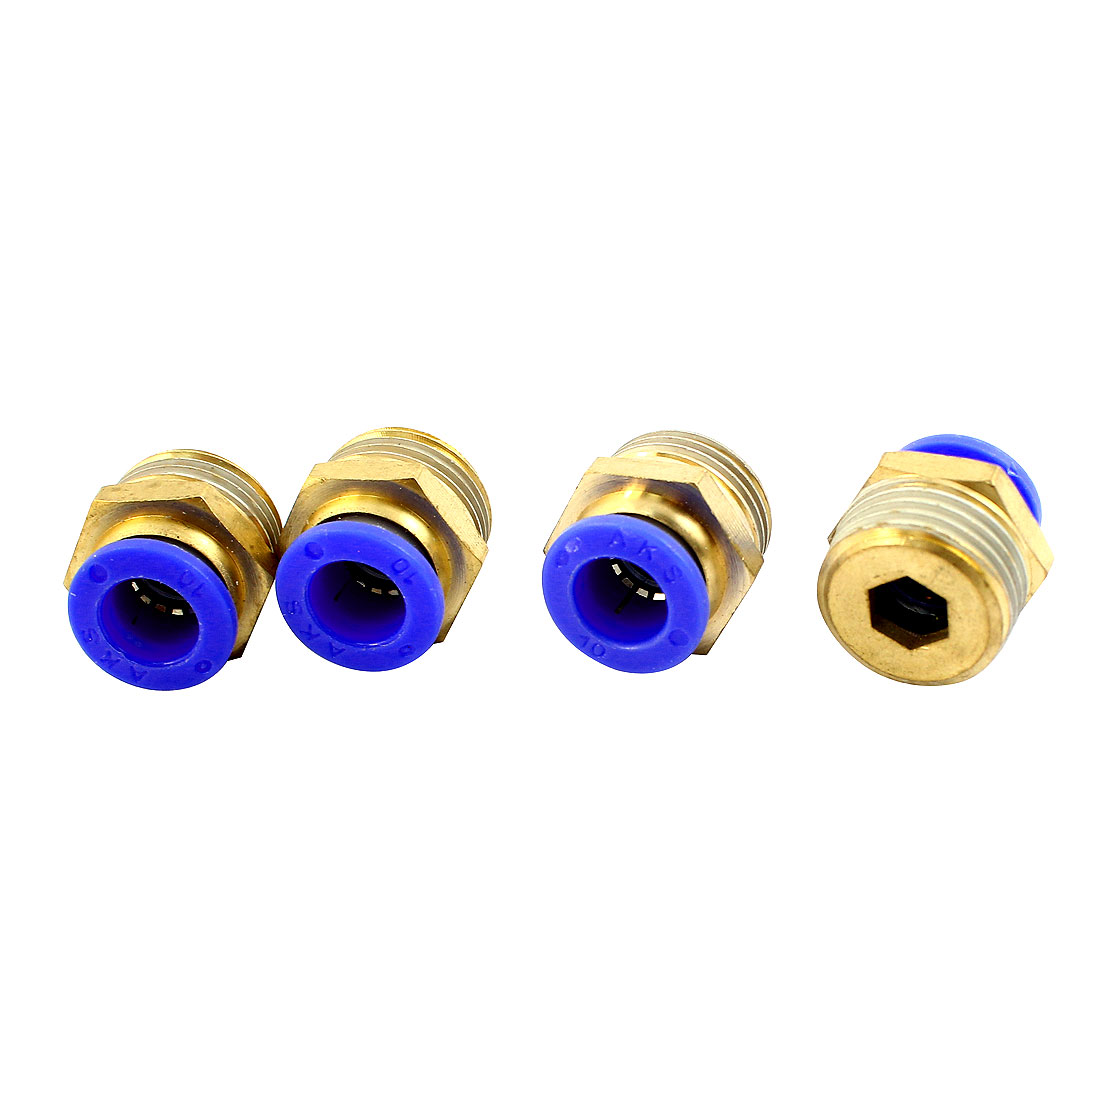 4Pcs 1/2PT Thread to 10mm OD Tube Connector Straight Air Pneumatic Quick Release Coupler Fitting Connector Joint